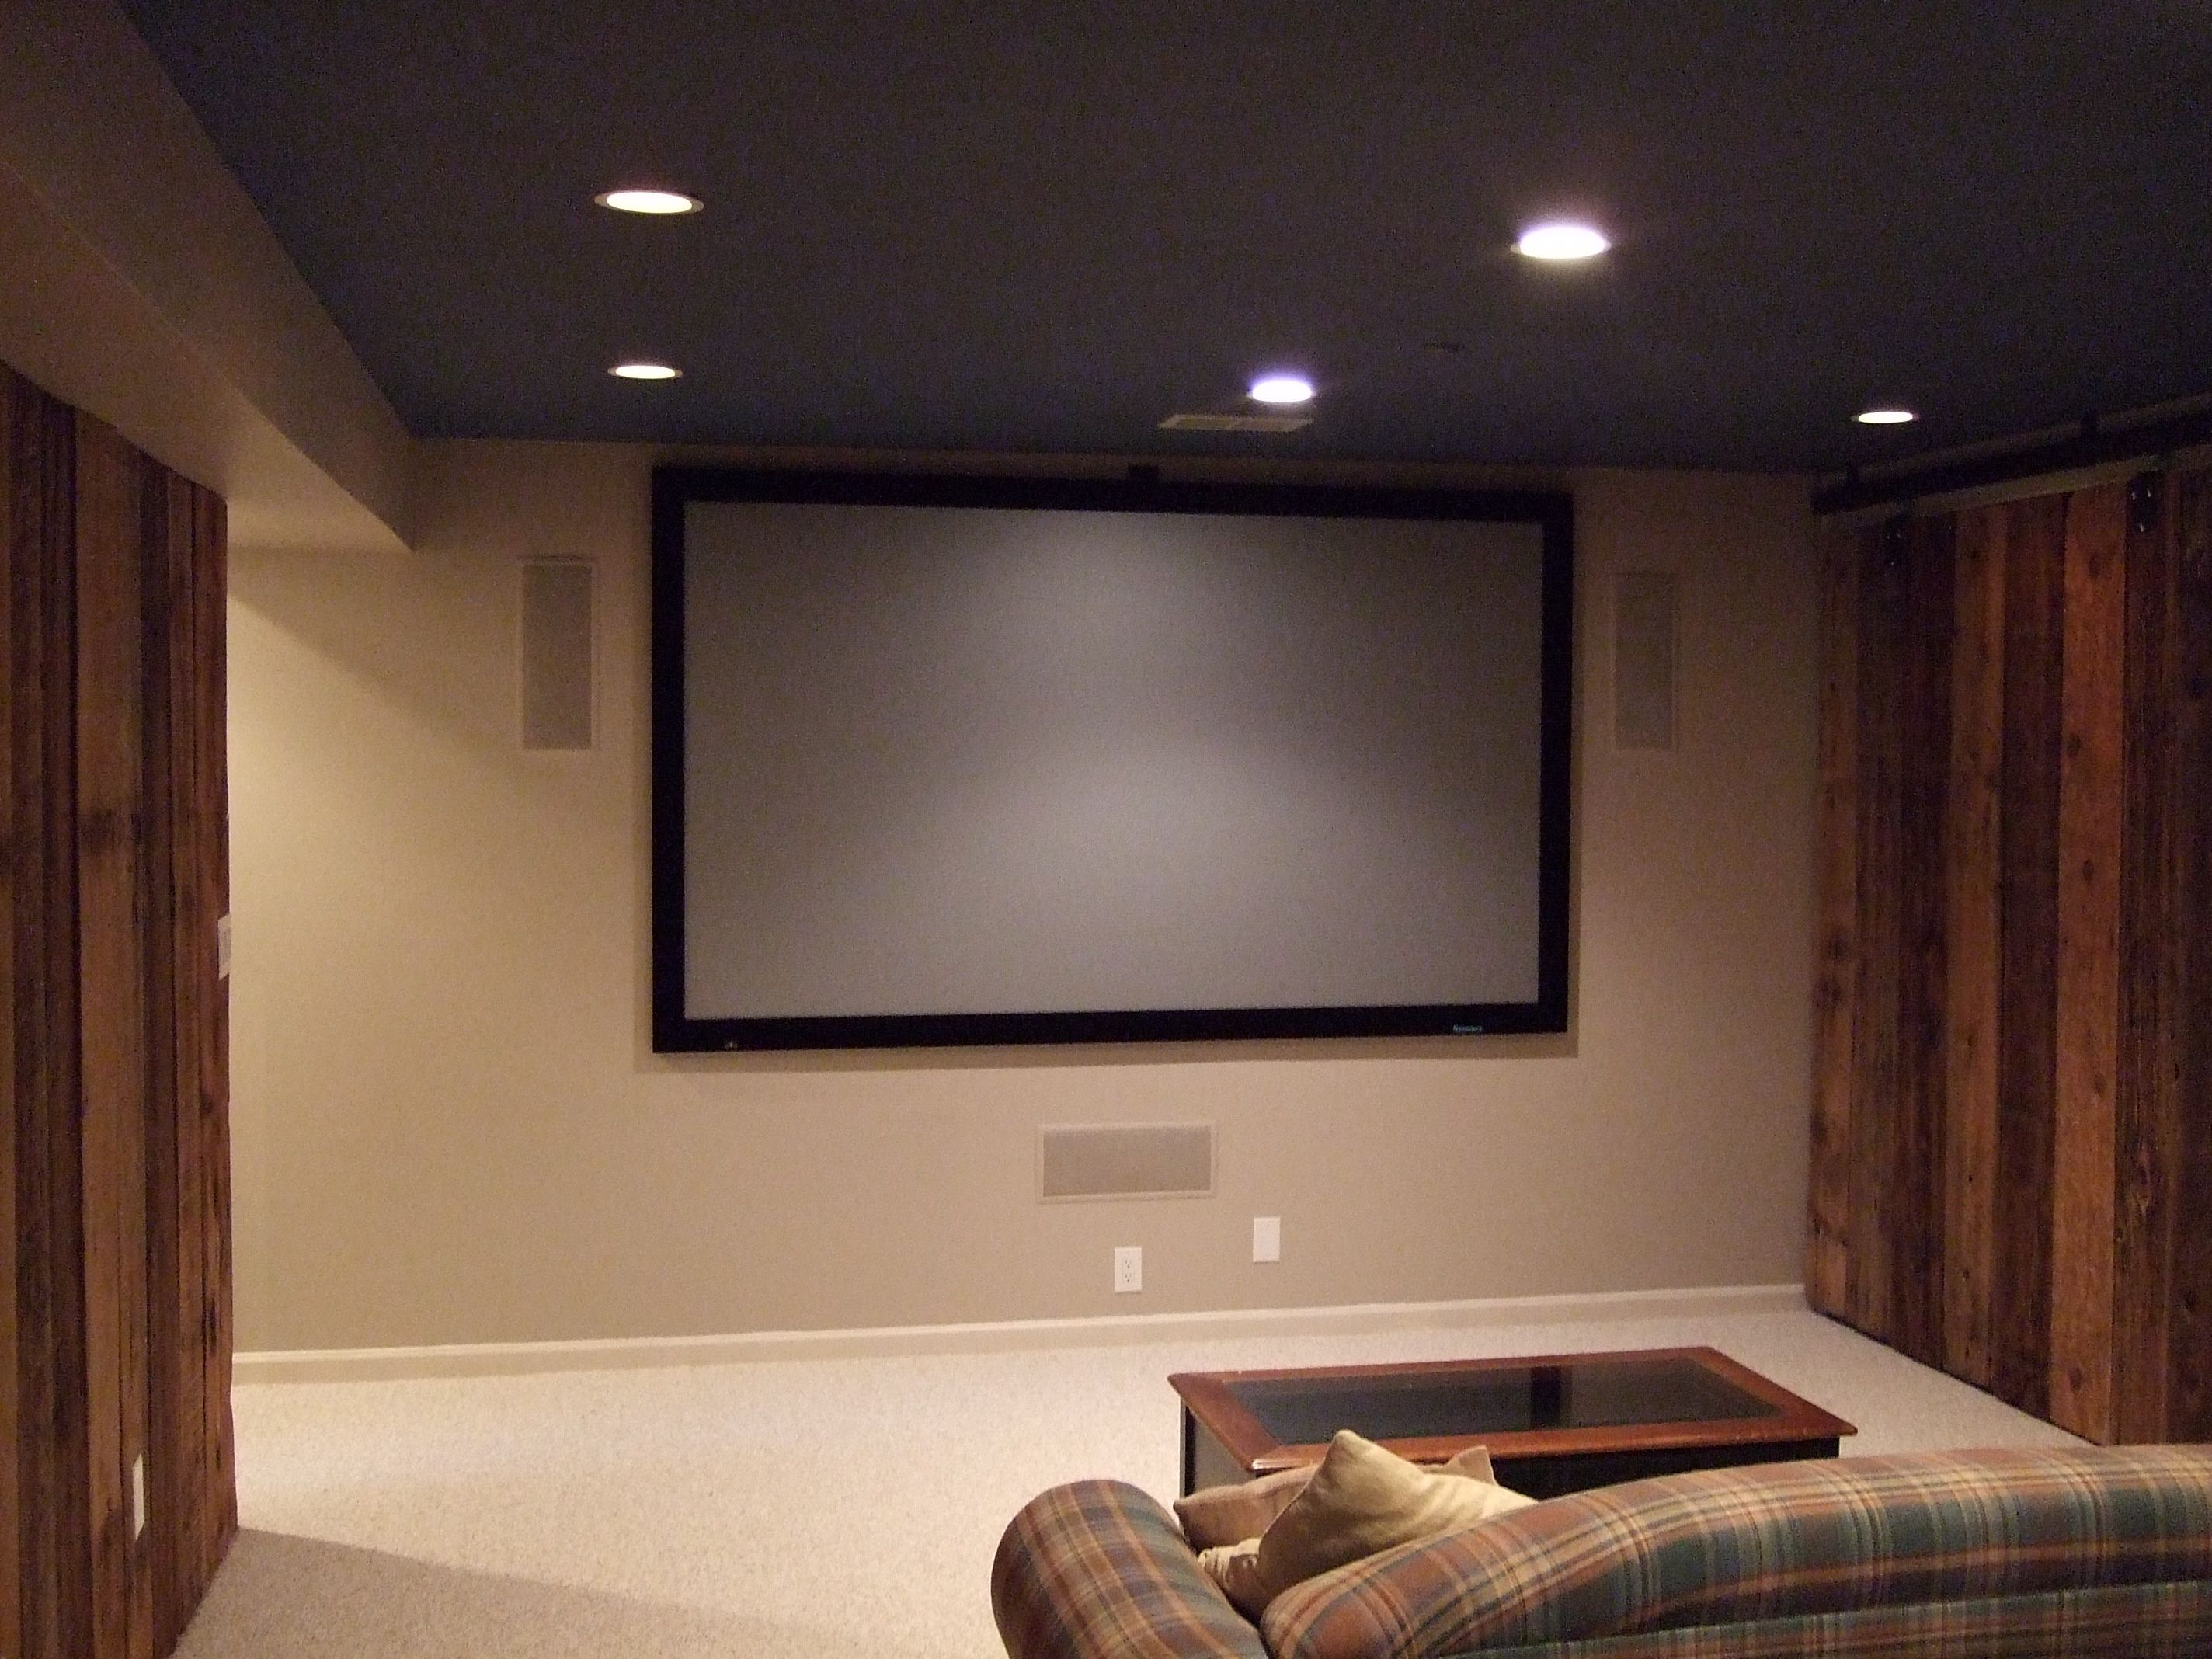 lighting ideas ceiling basement media room. Appealing And Shapely Home Theater Ideas In Basement Wall Unit Custom Lighting Ceiling Media Room